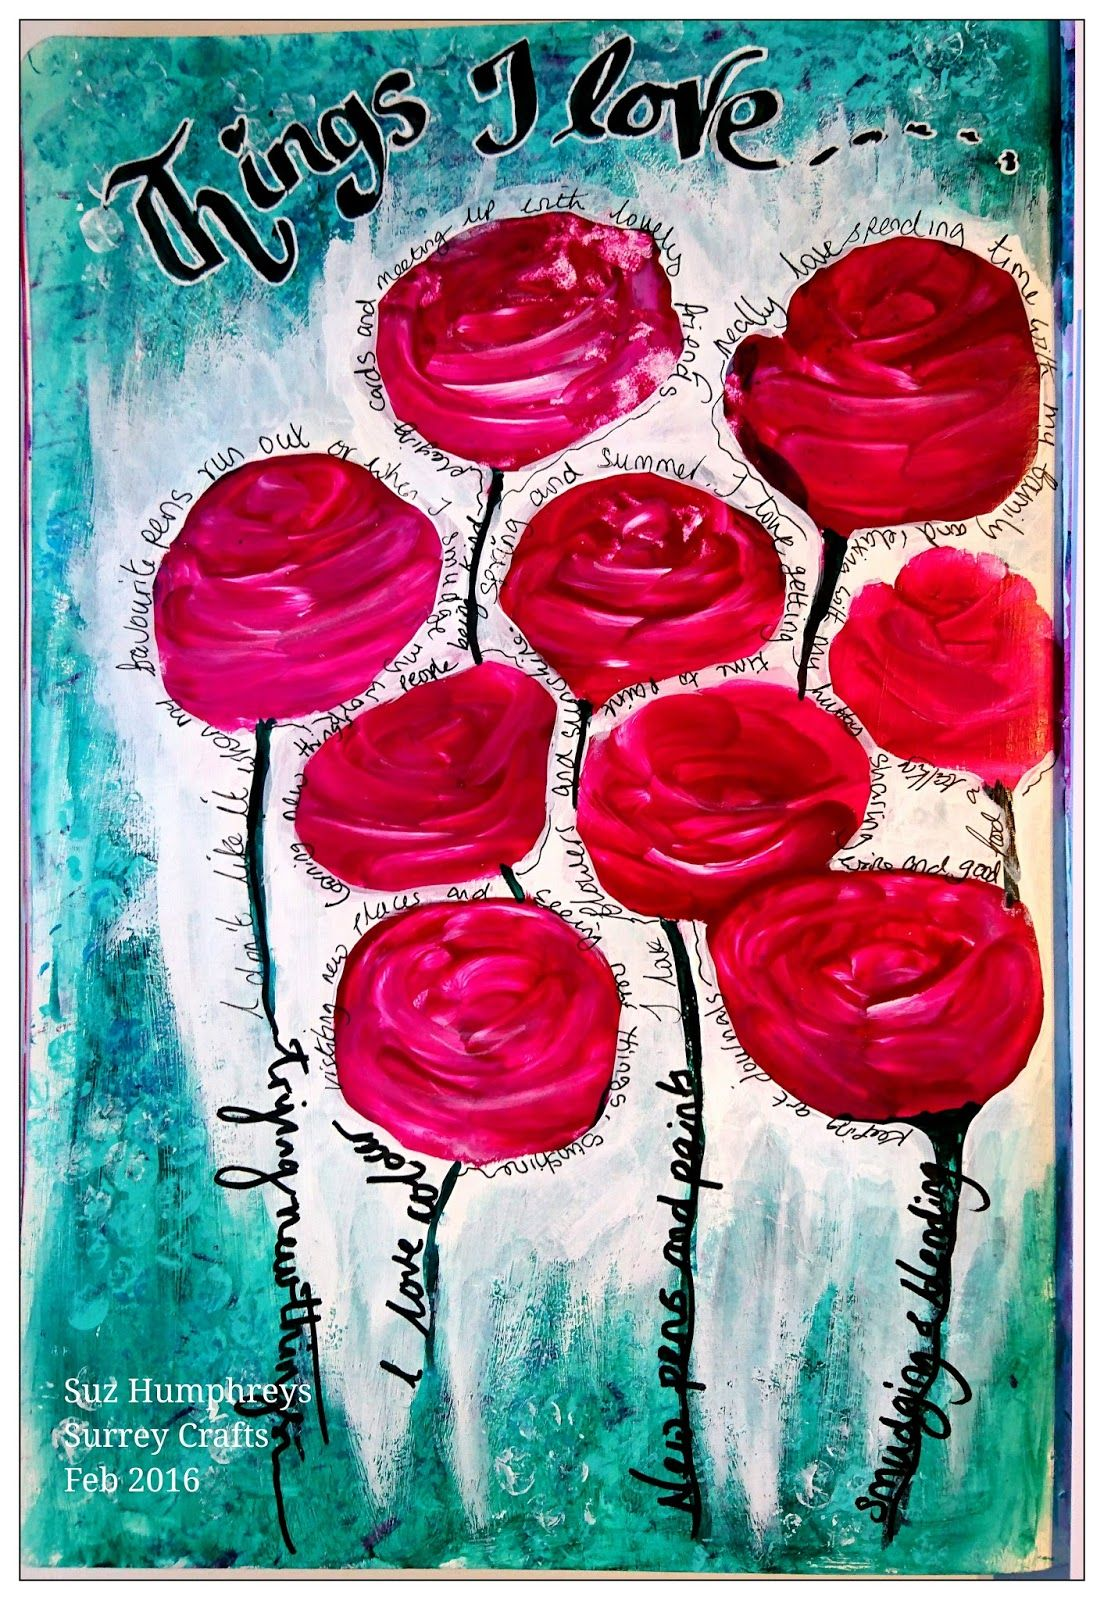 Surrey Crafts: Simple and super fast technique to create bold flower heads using DecoArt paints #decoartprojects #decoartmedia #mixedmedia